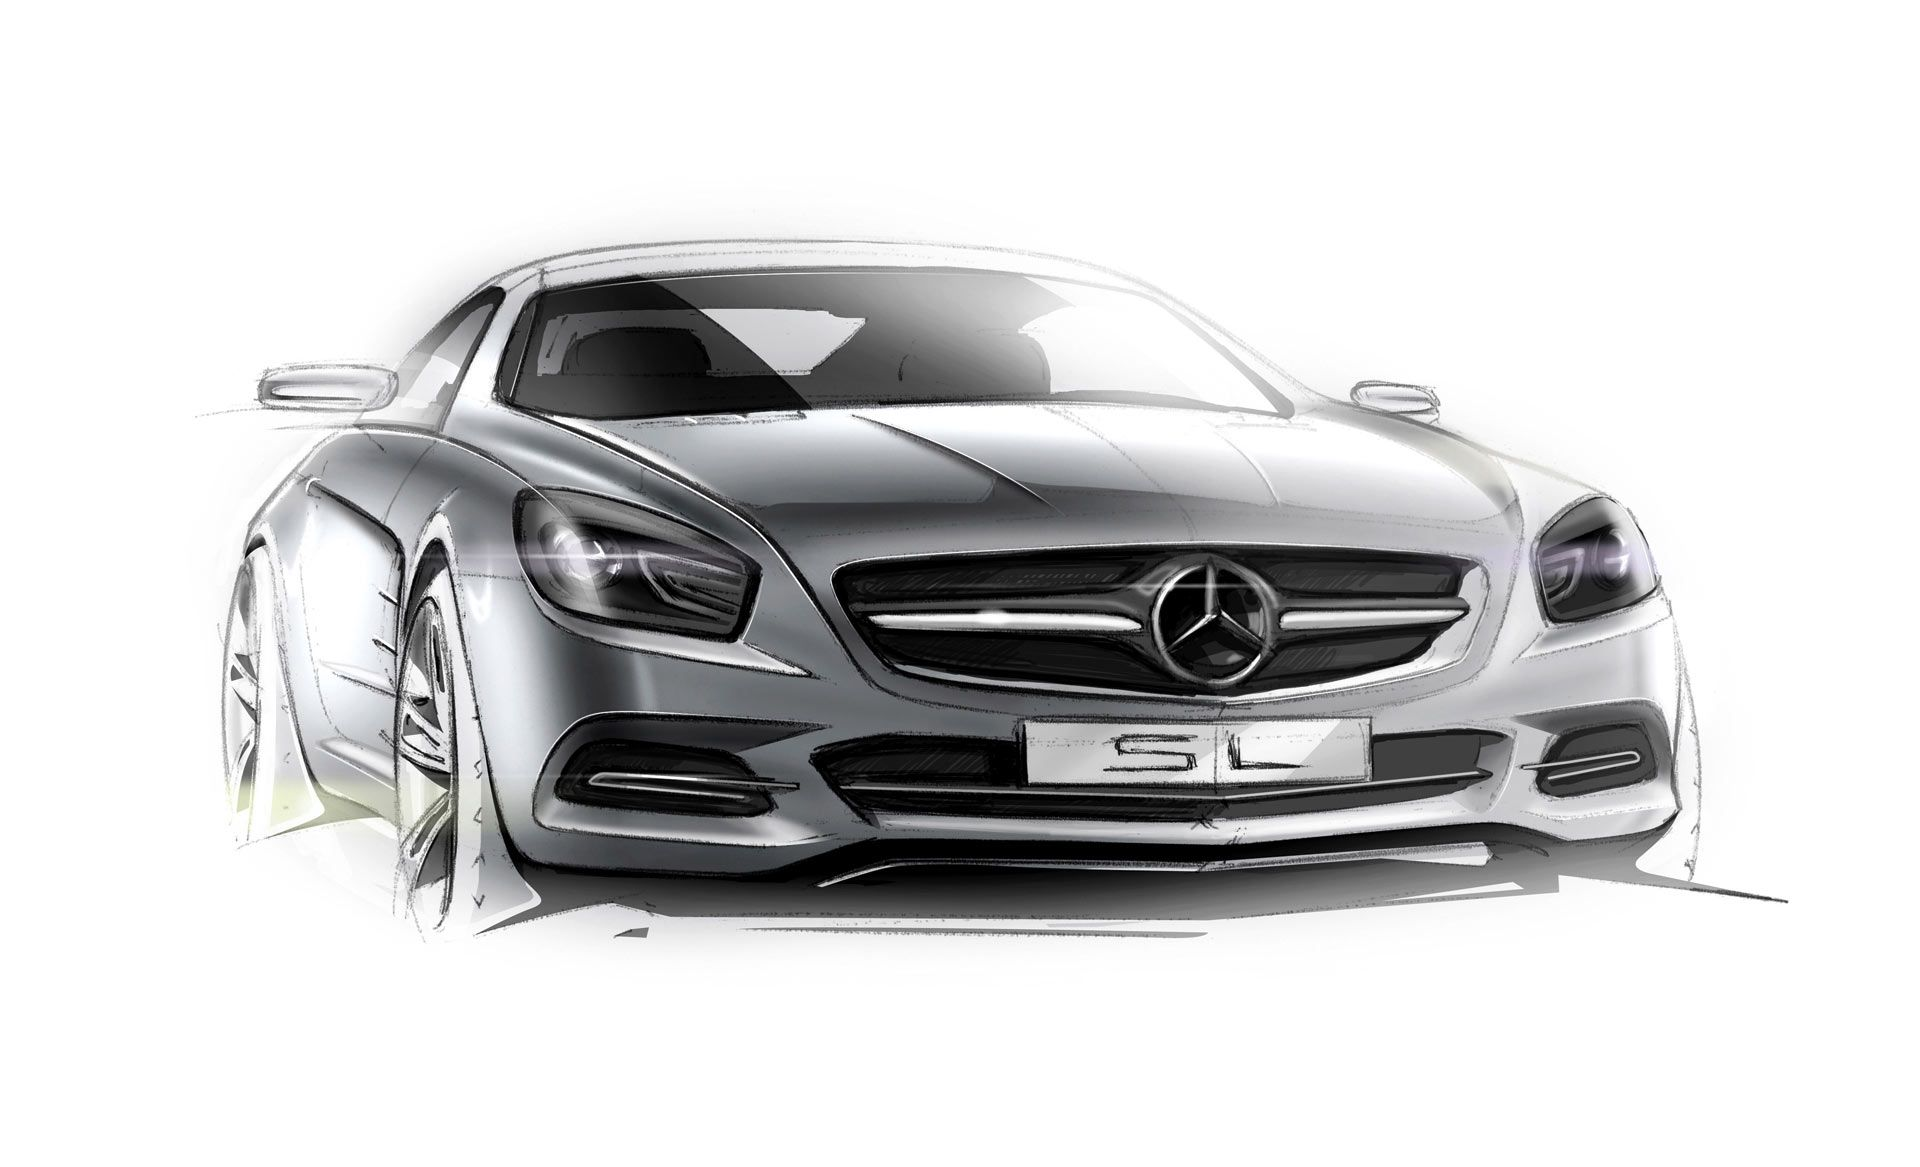 Mercedes-Benz SL-Class - Design Sketch | A | Pinterest | Skizzieren ...